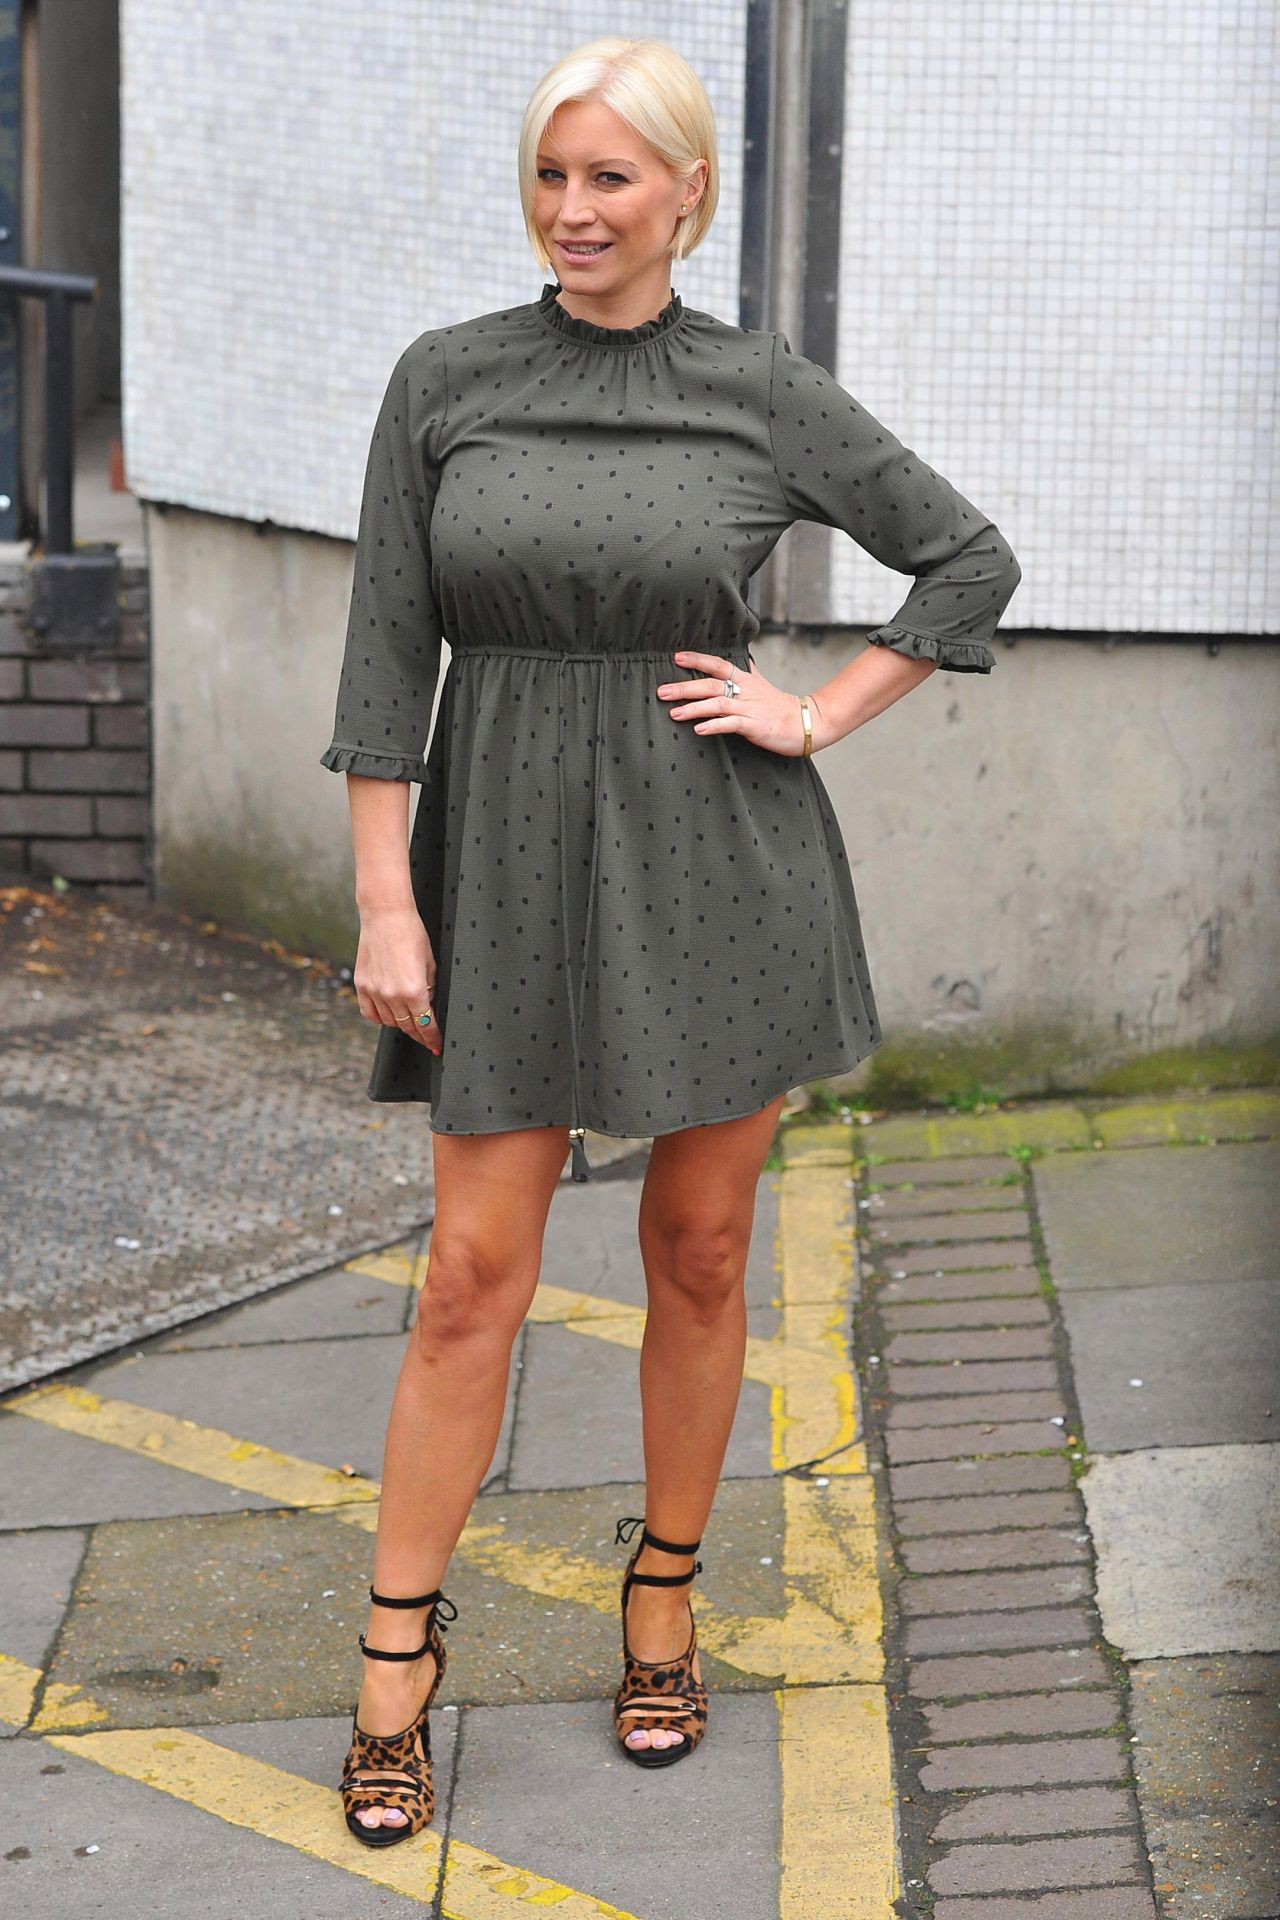 Denise Van Outen In Mini Dress Outside Itv Studios In